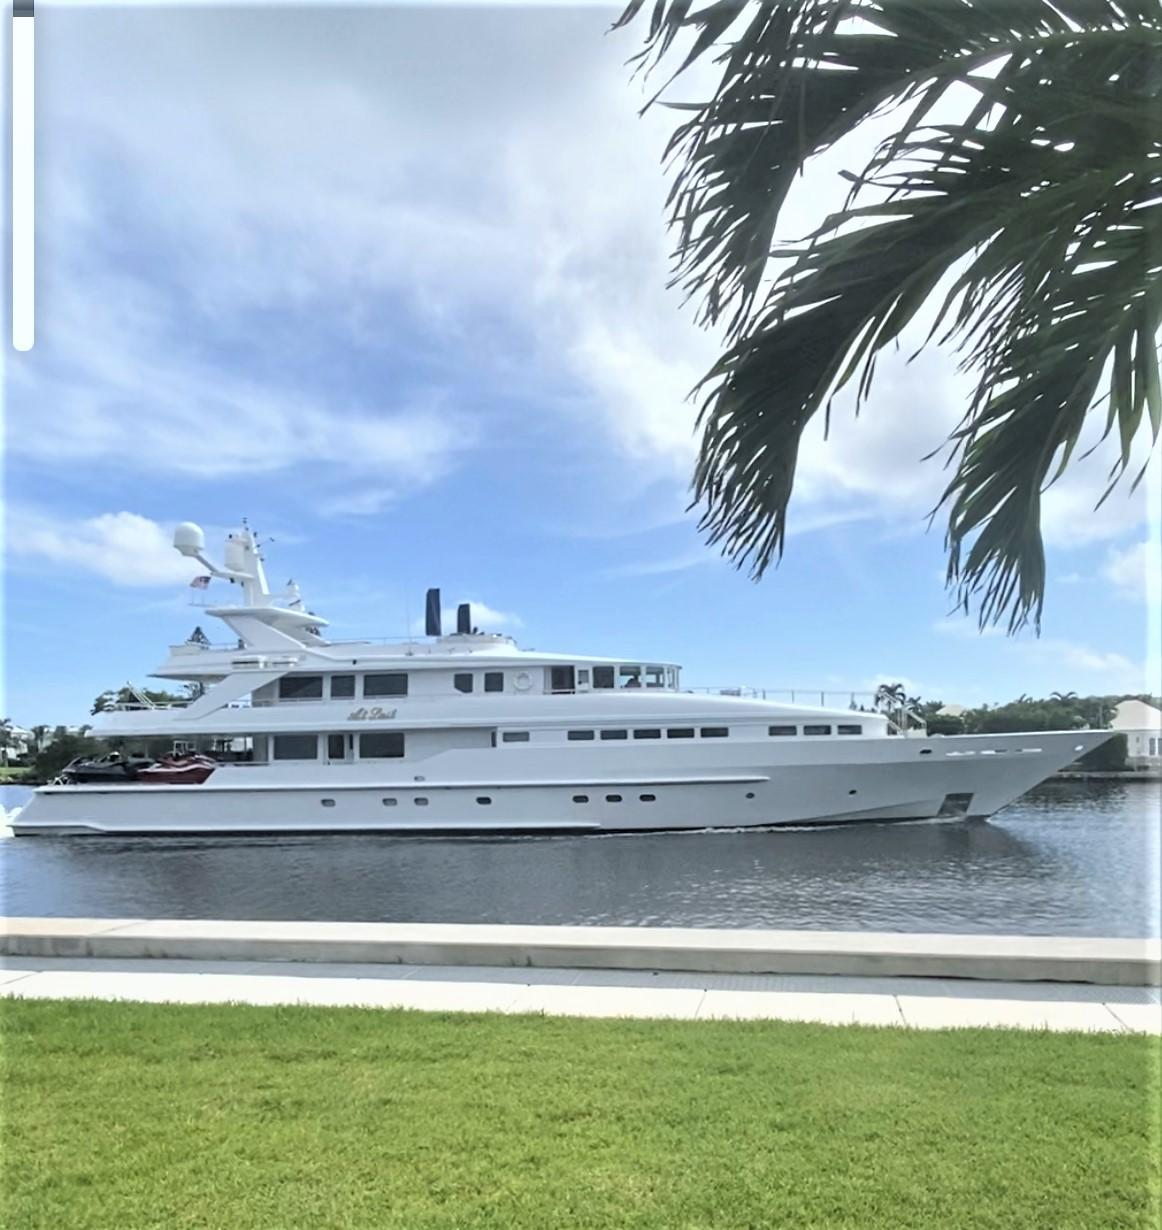 Relax & Watch The Yachts Go By